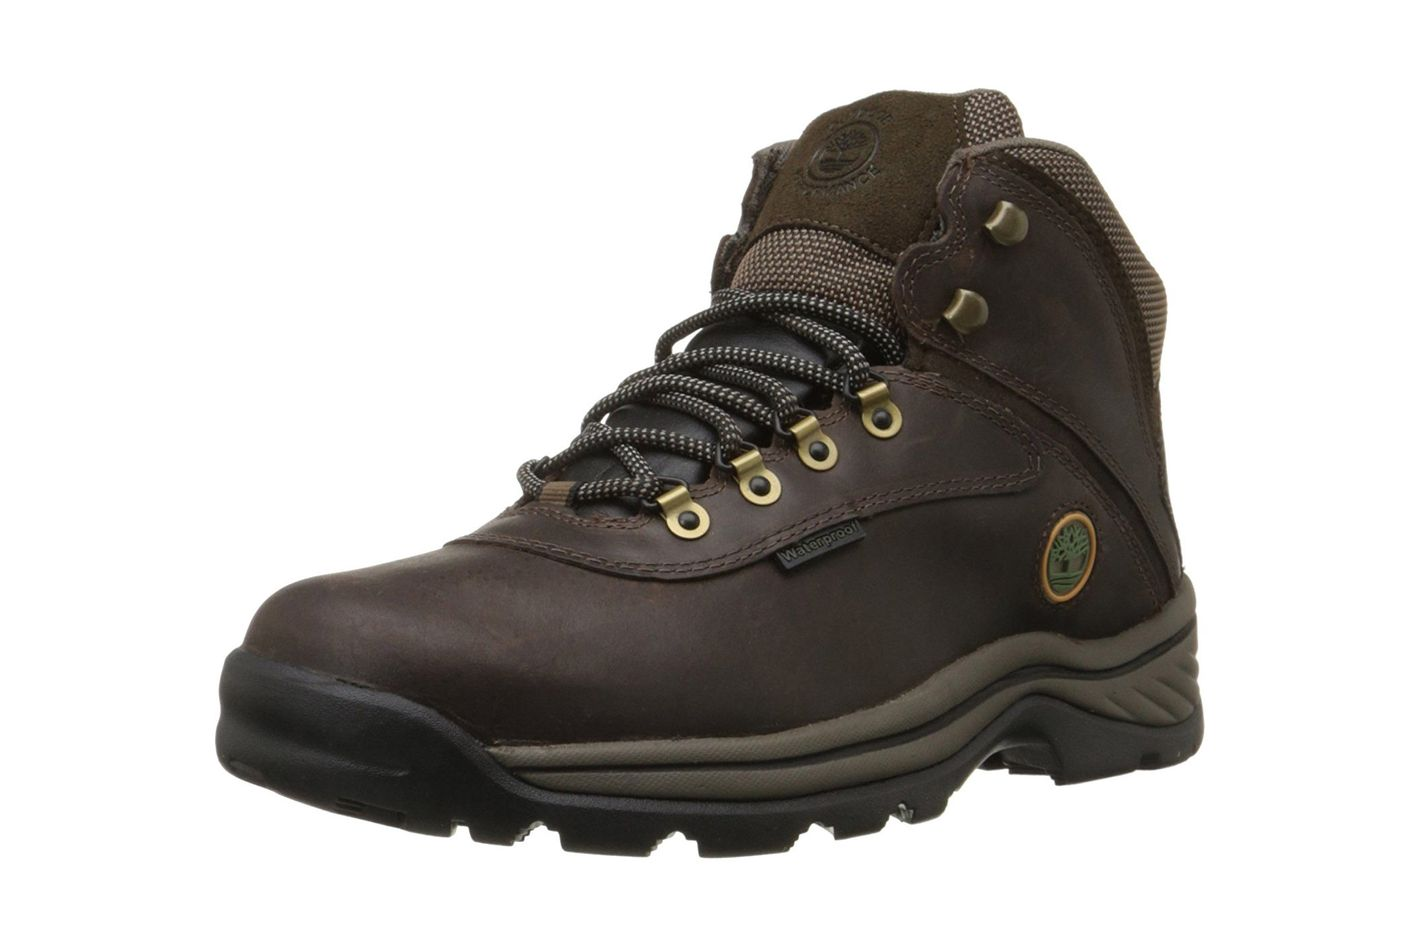 13 Best Hiking Boots For Men Reviewed 2018